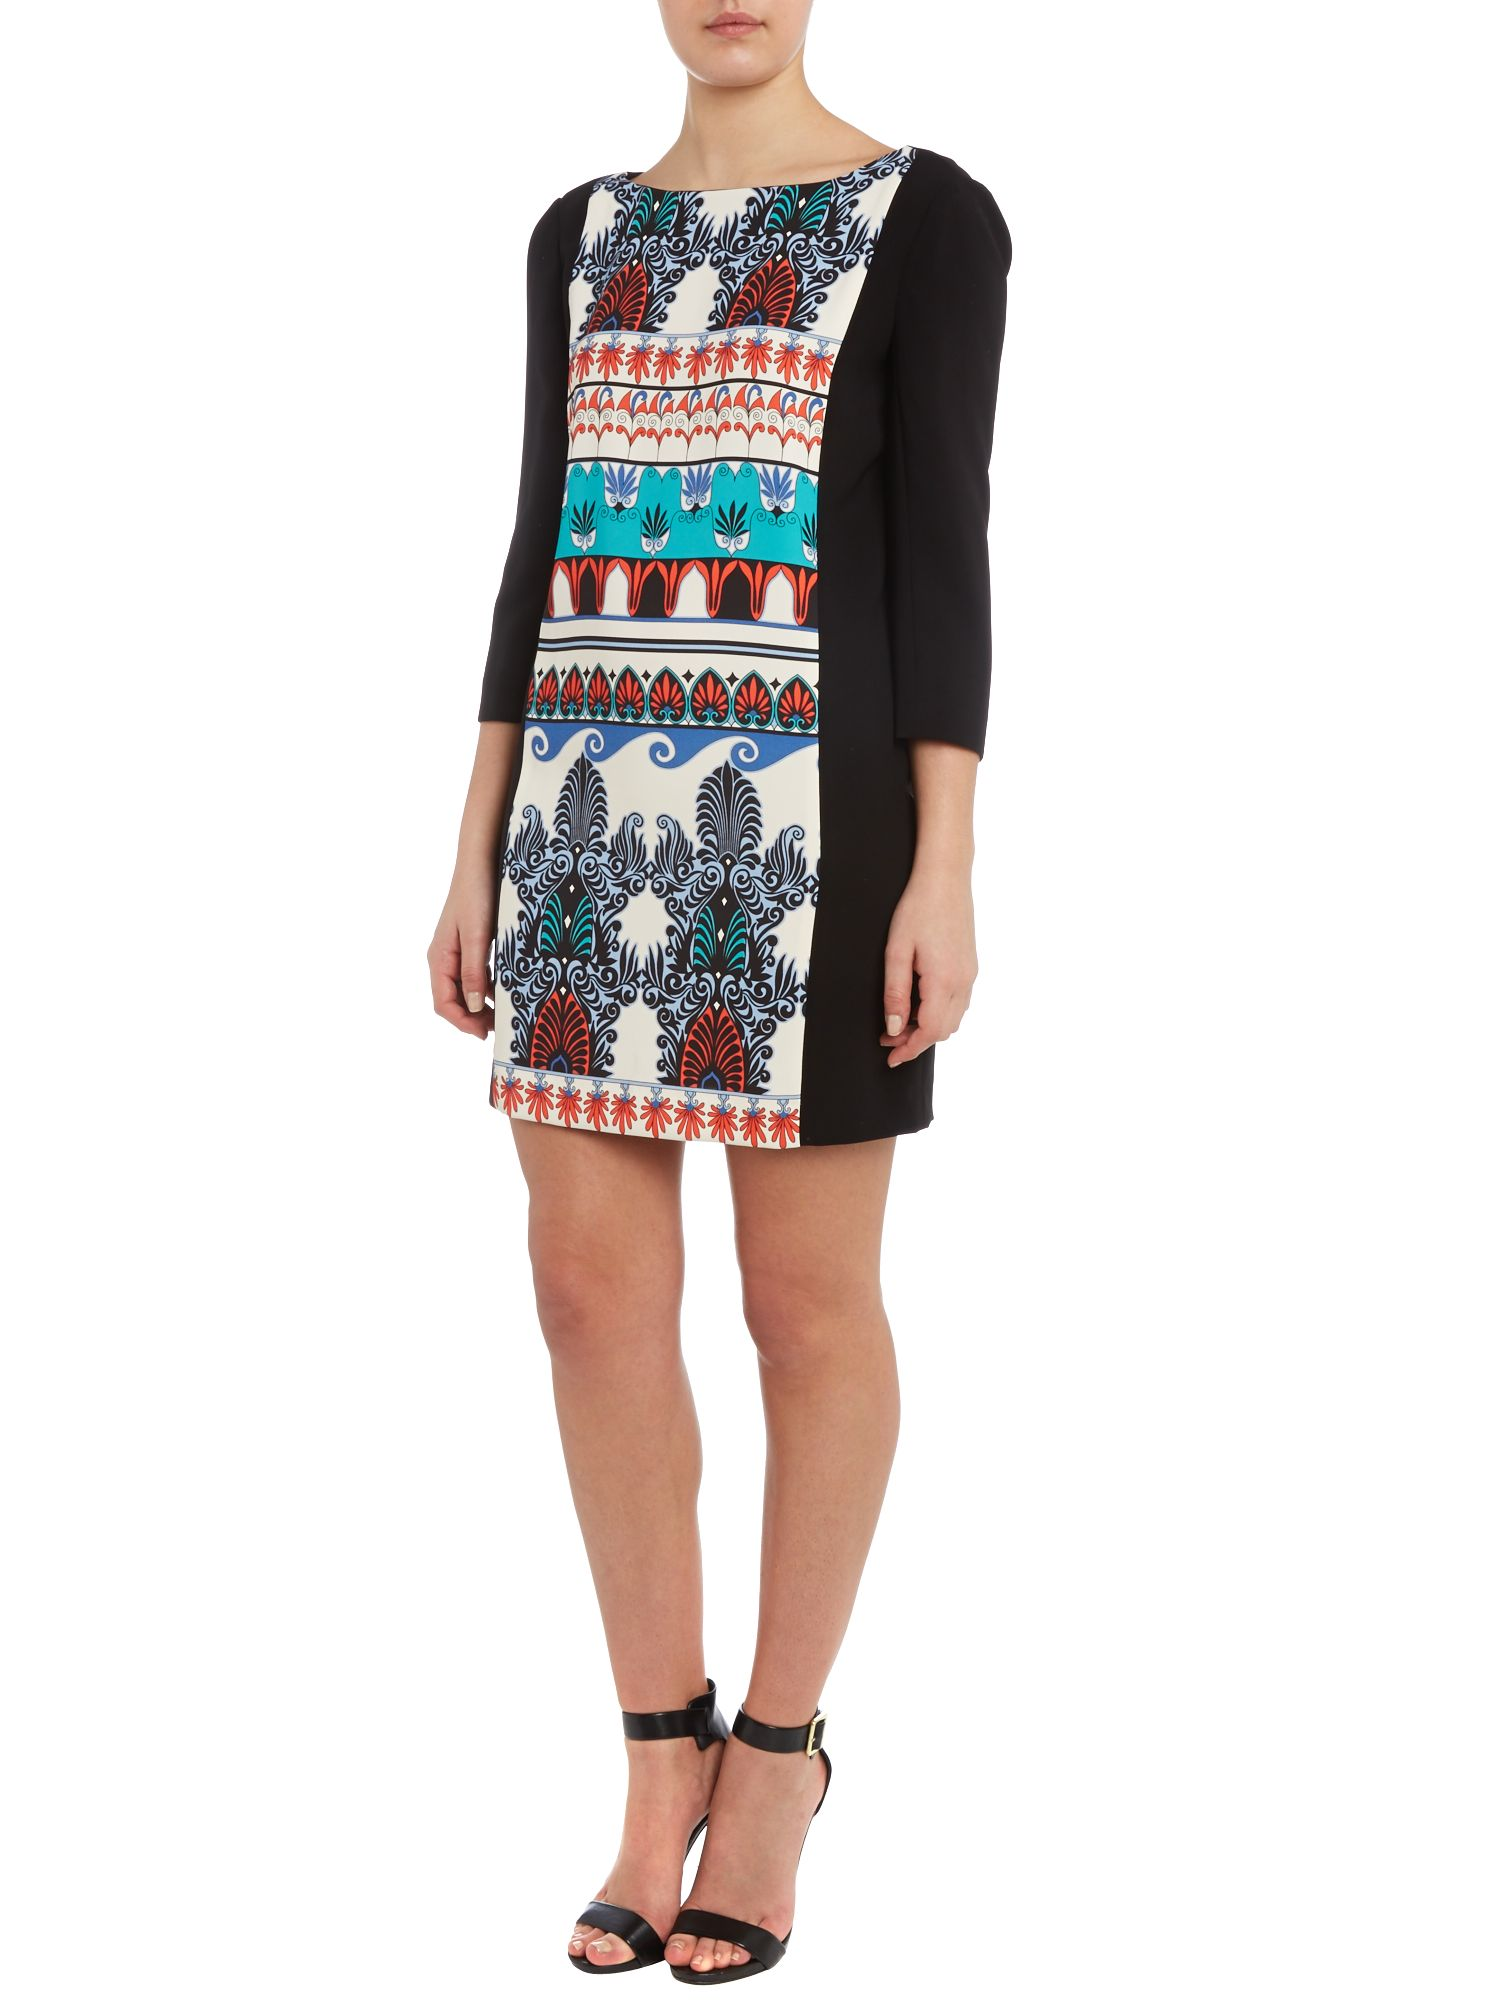 3/4 sleeved printed dress